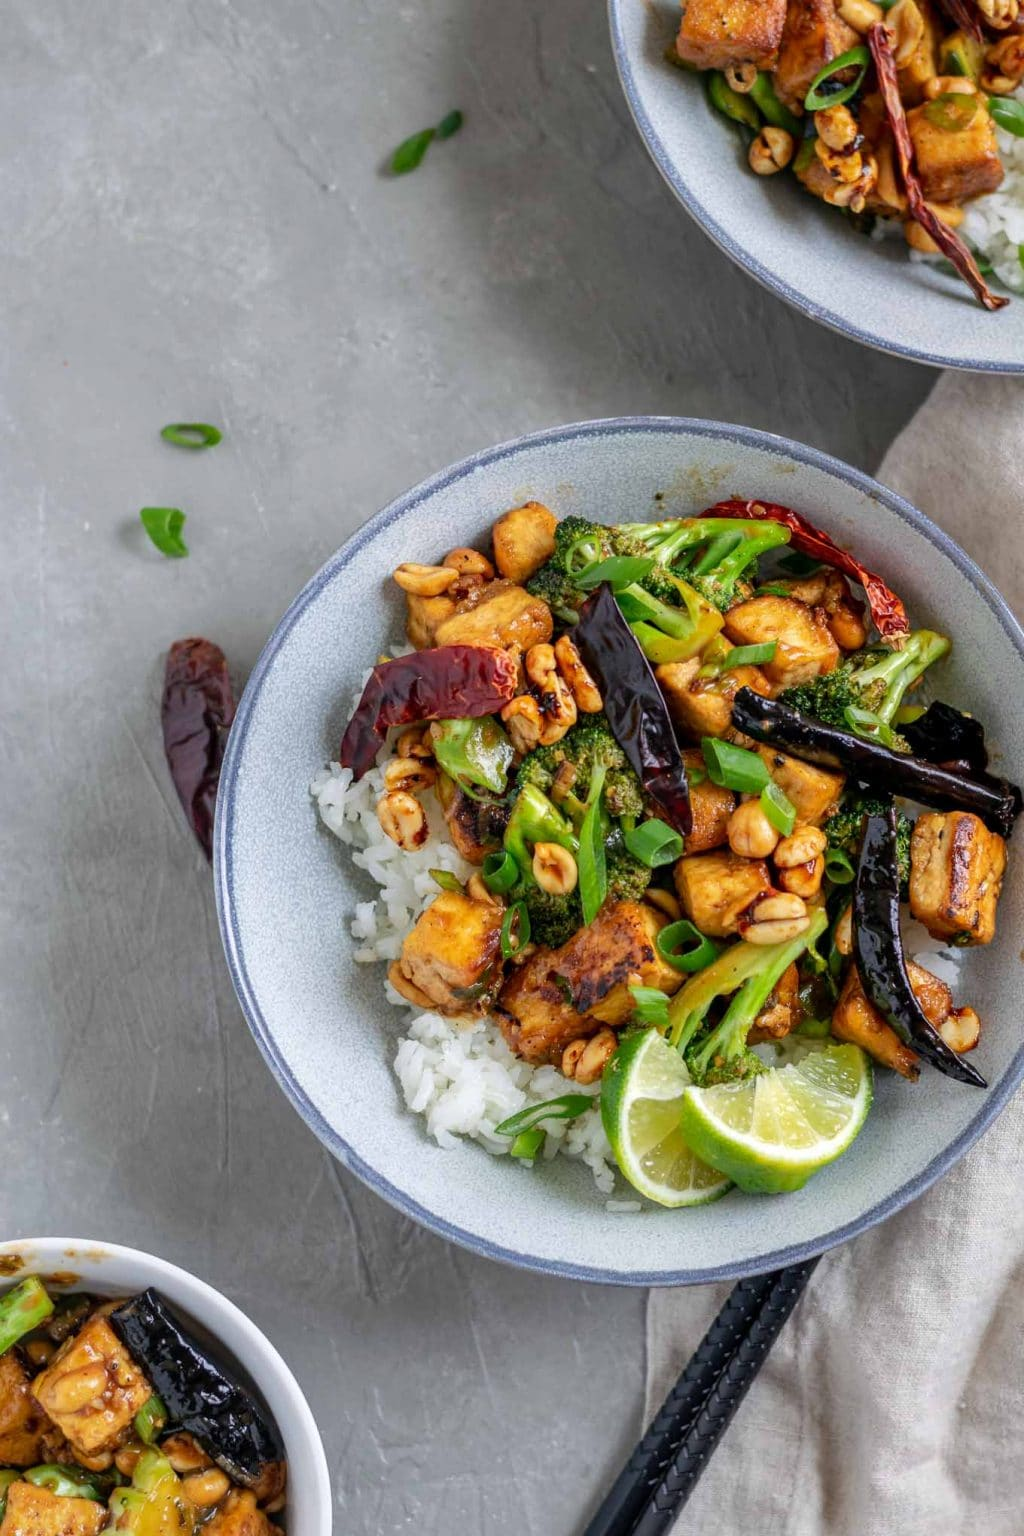 vegan kung pao tofu with broccoli and jasmine rice. Garnished with lime wedges and scallion greens